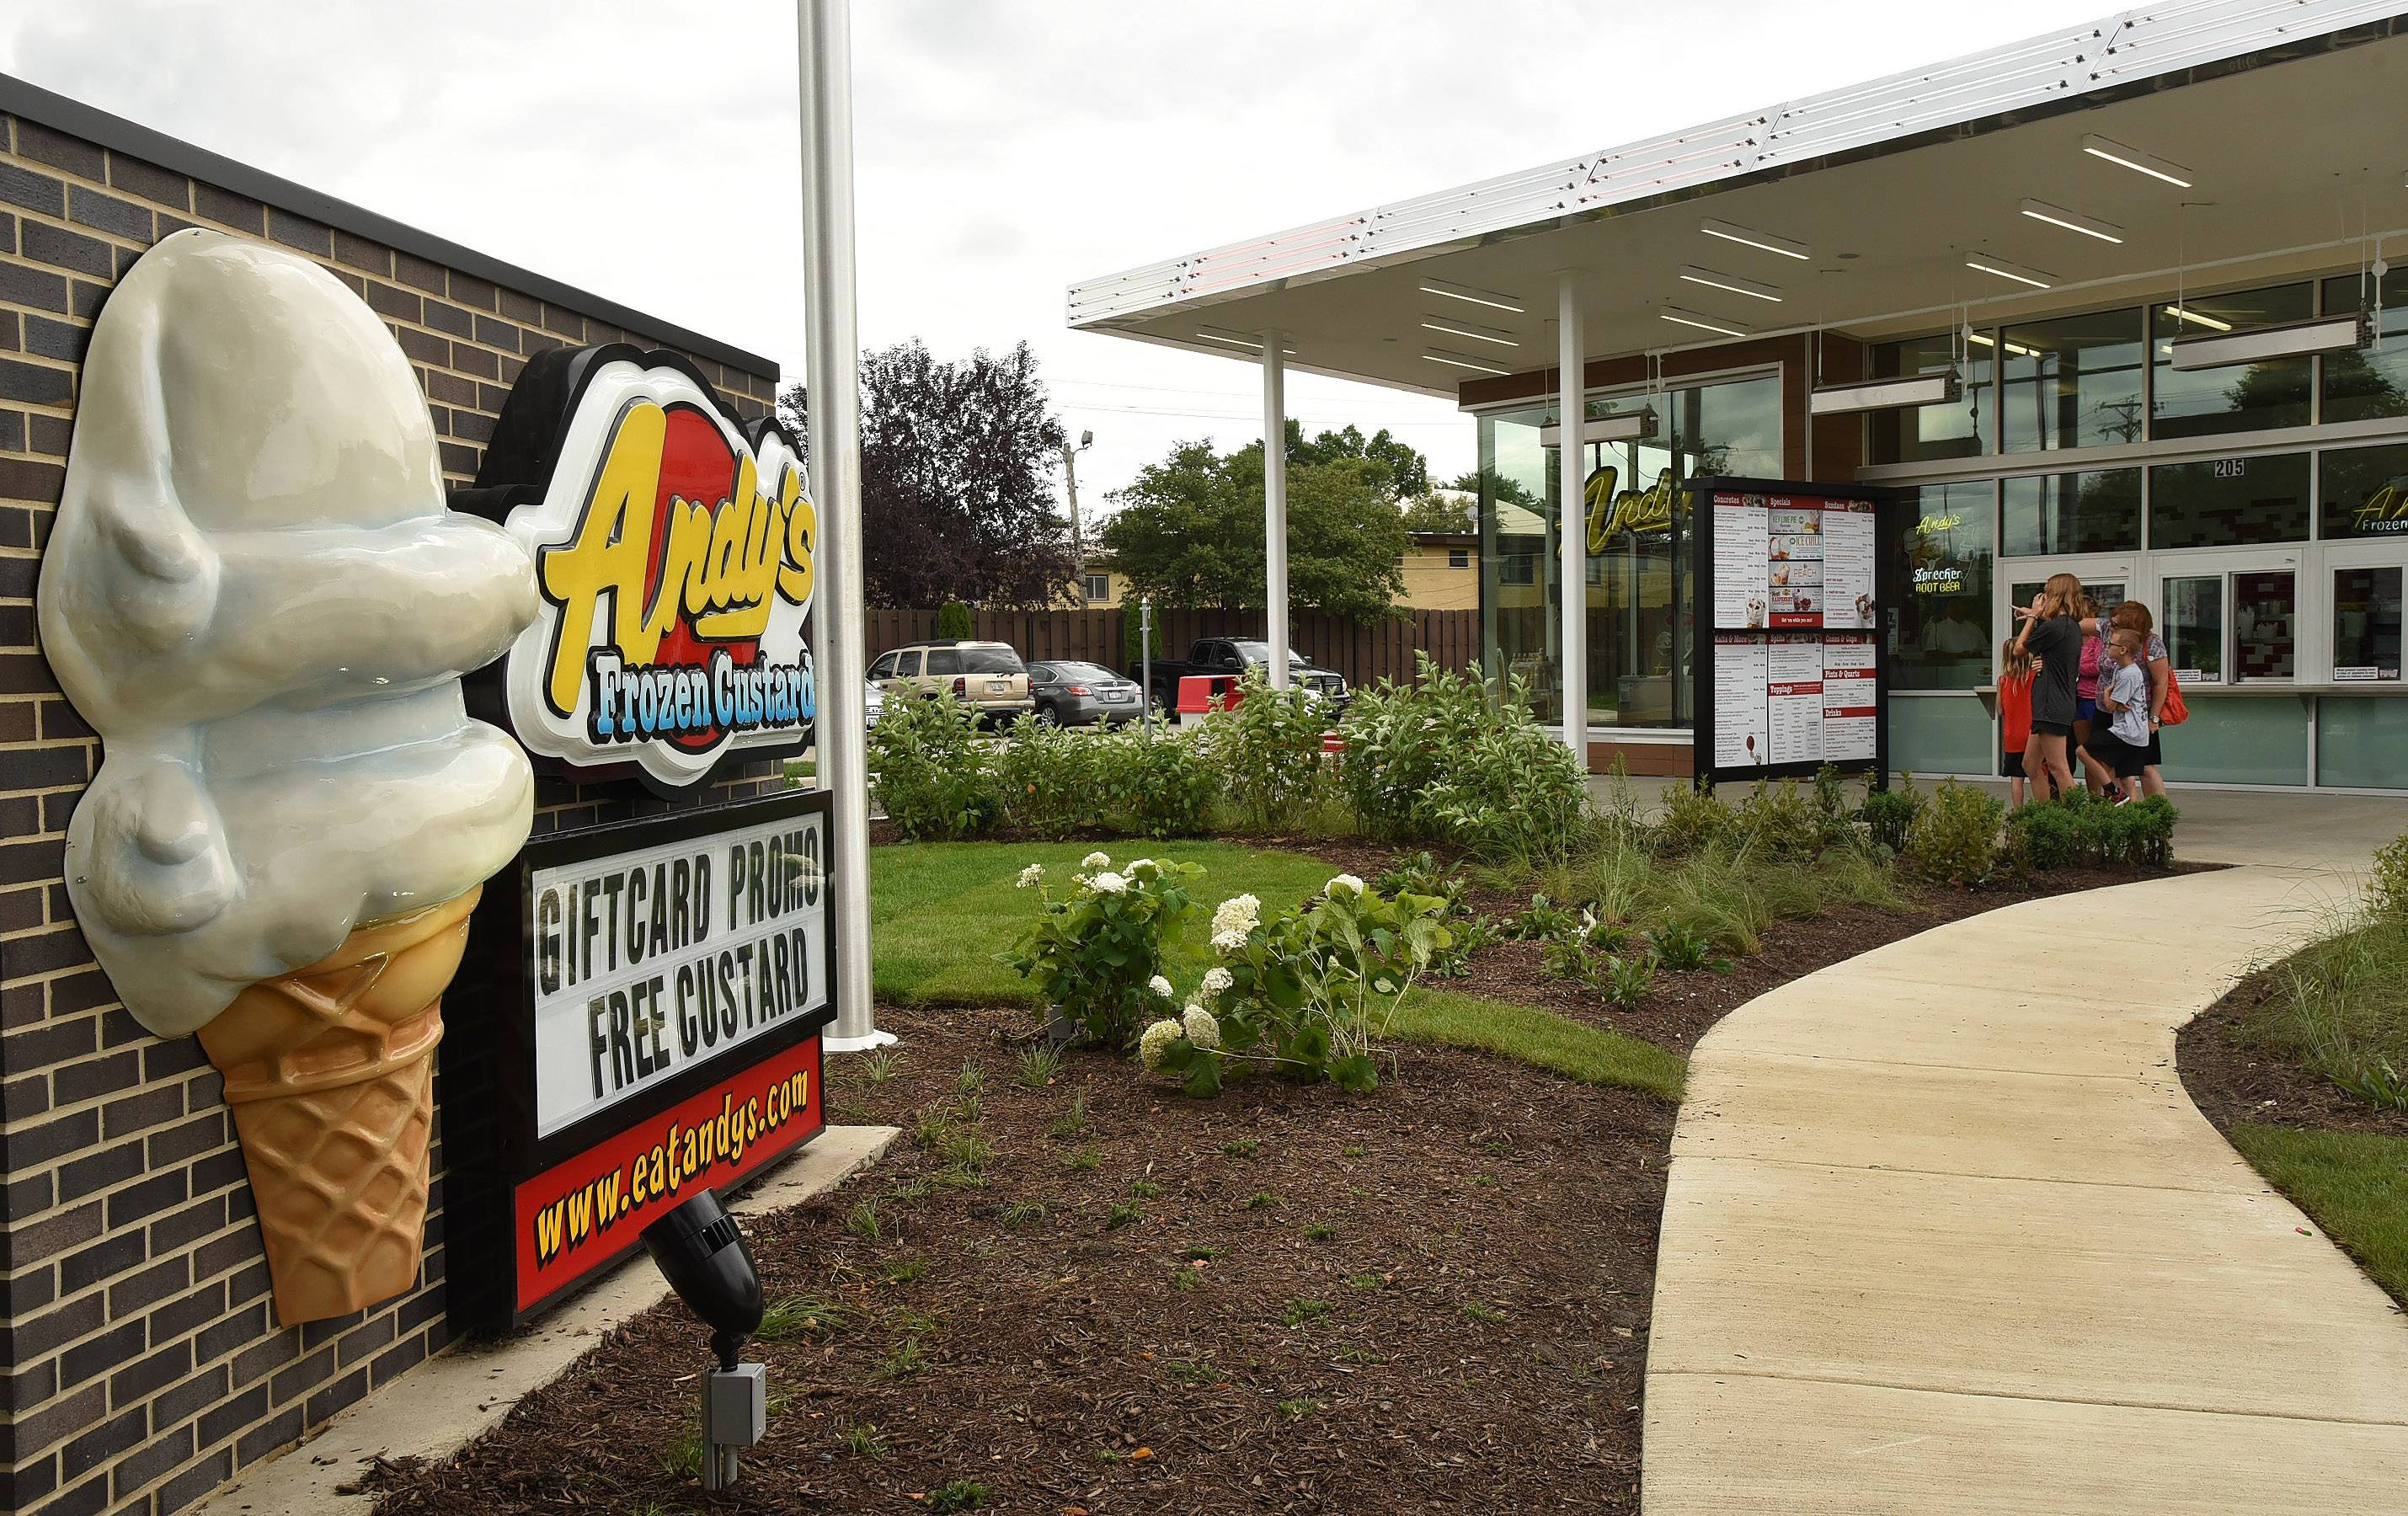 Andy's Frozen Custard is now open in Mount Prospect.